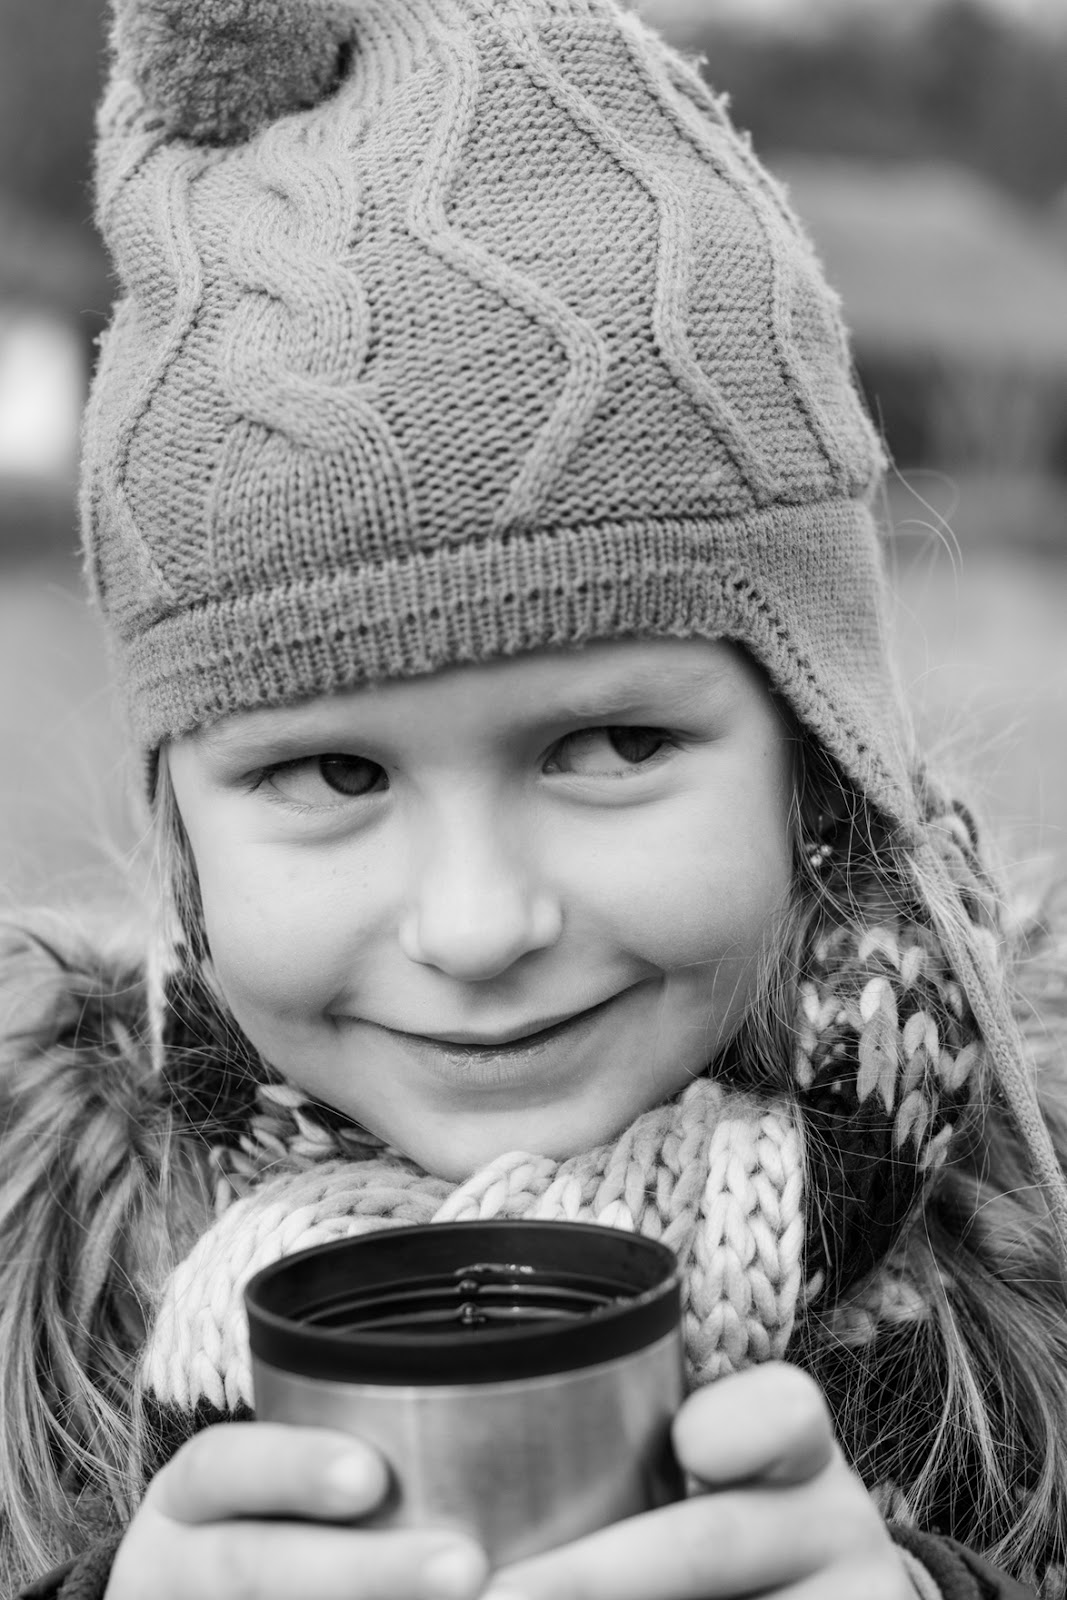 Little girl with the cup portrait, grainpixels photography